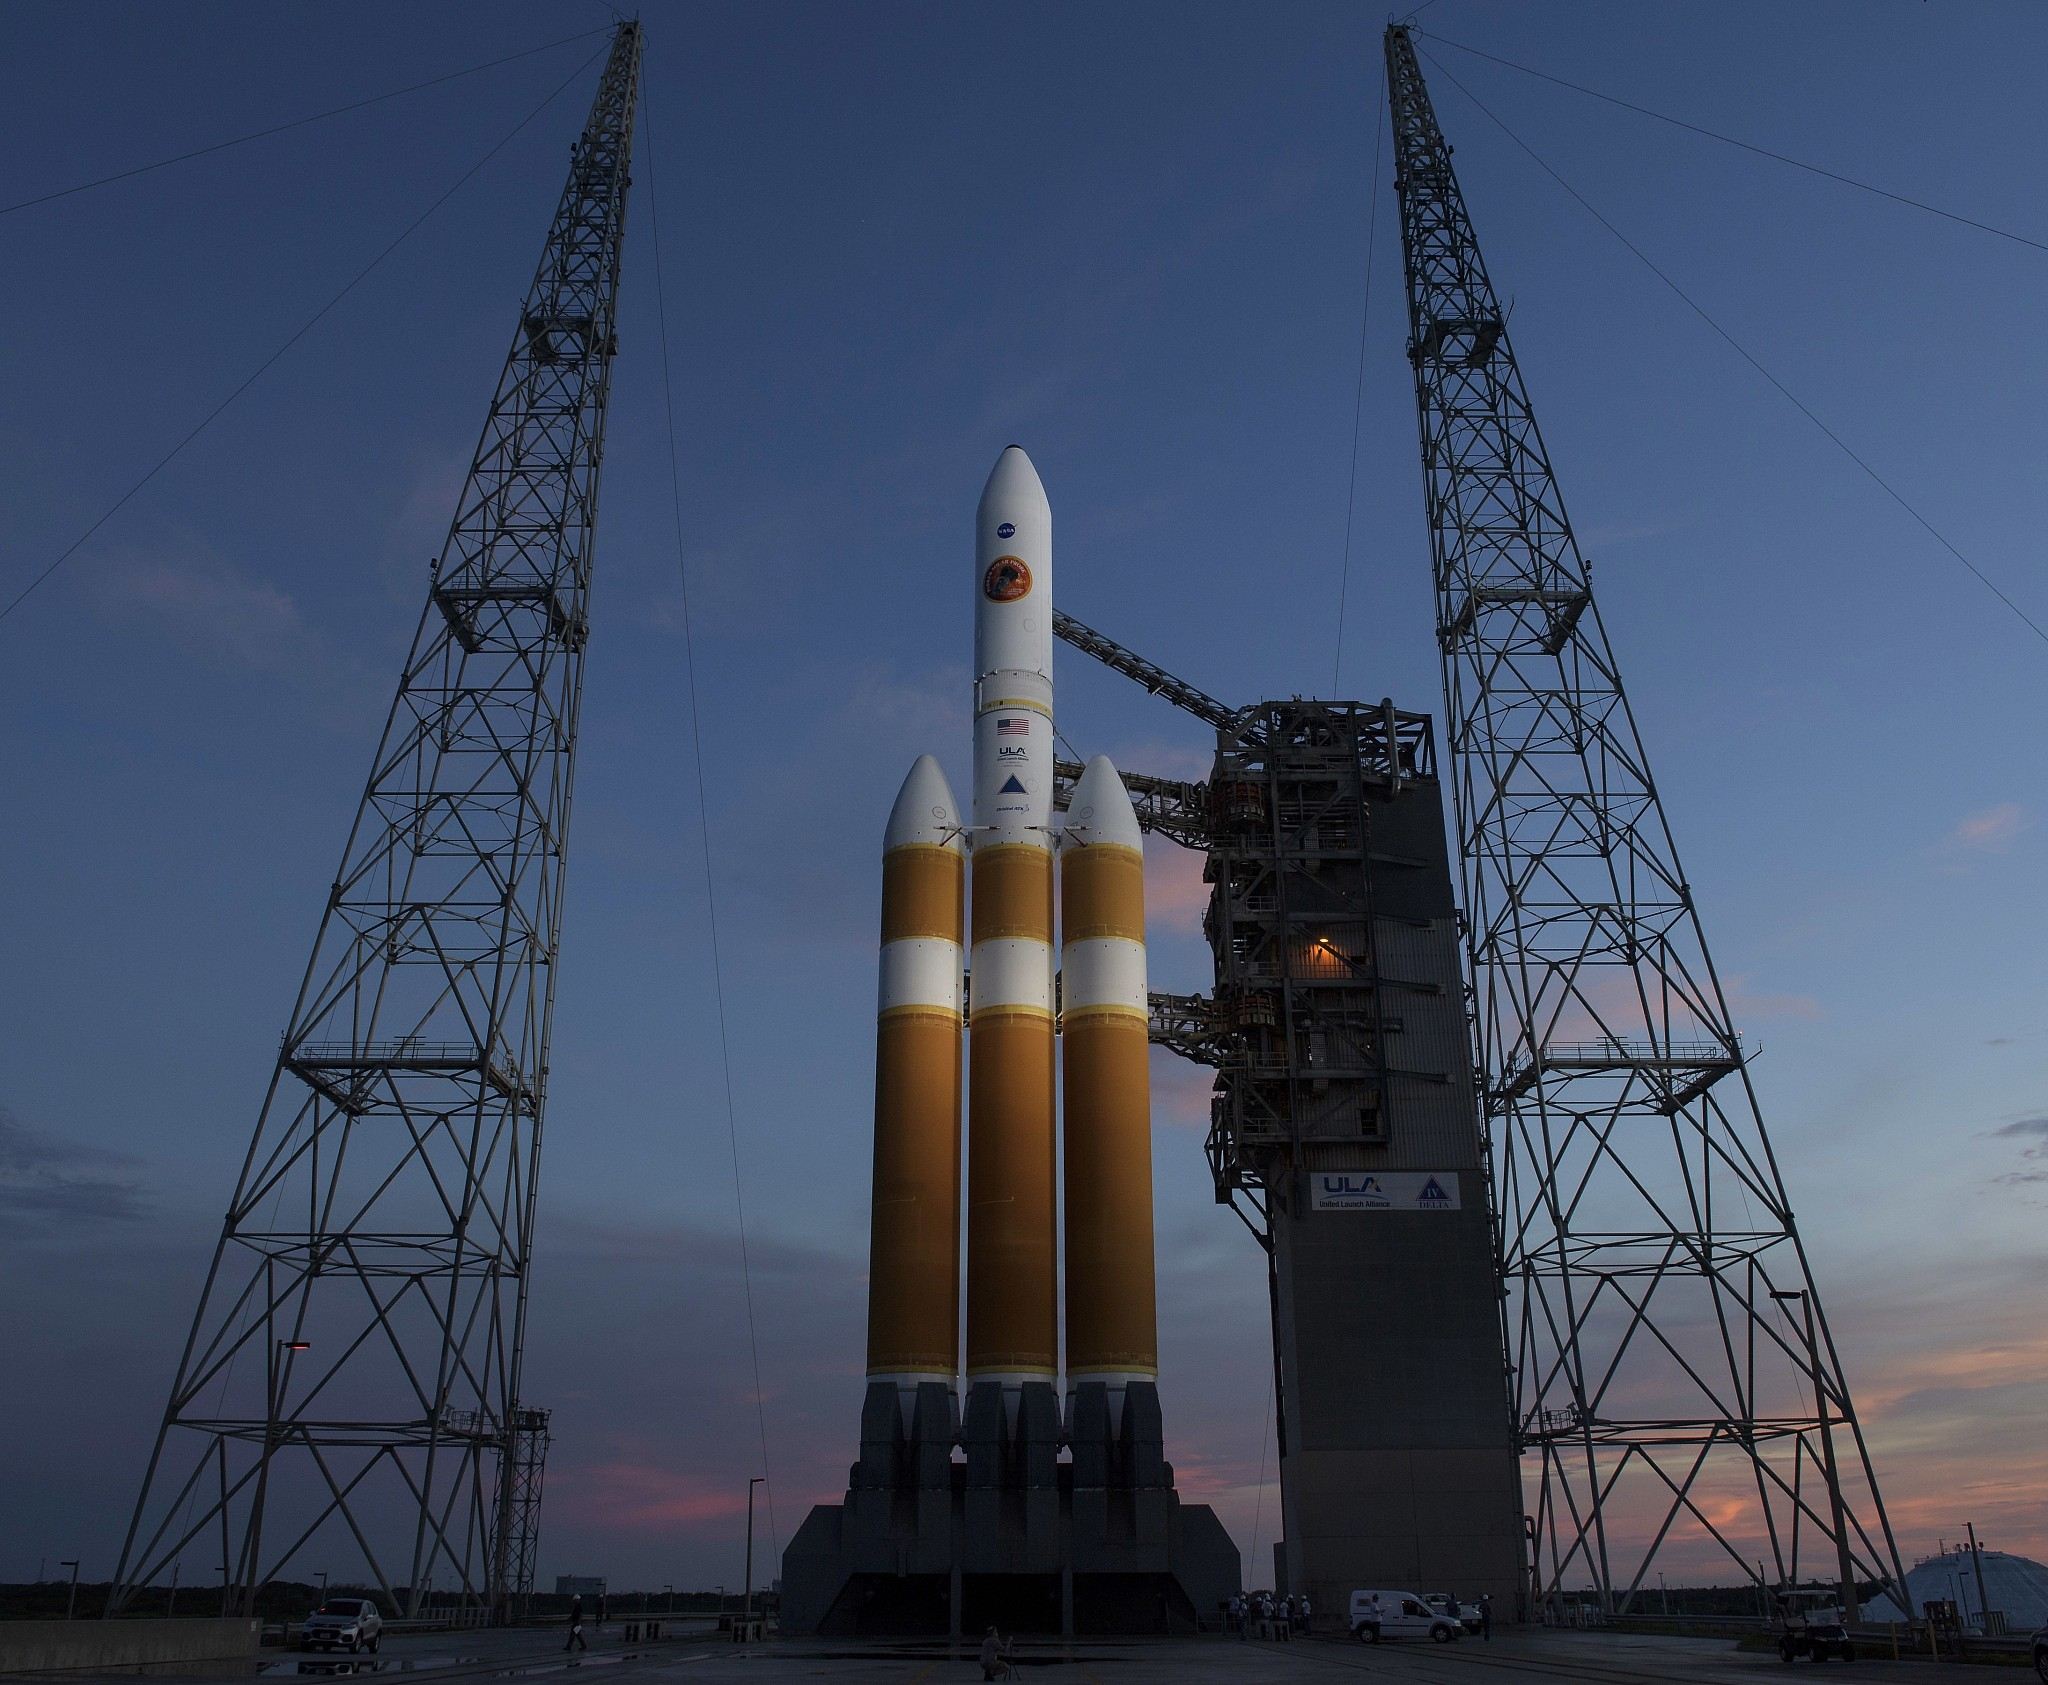 NASA launches the first probe, which will fly to the Sun